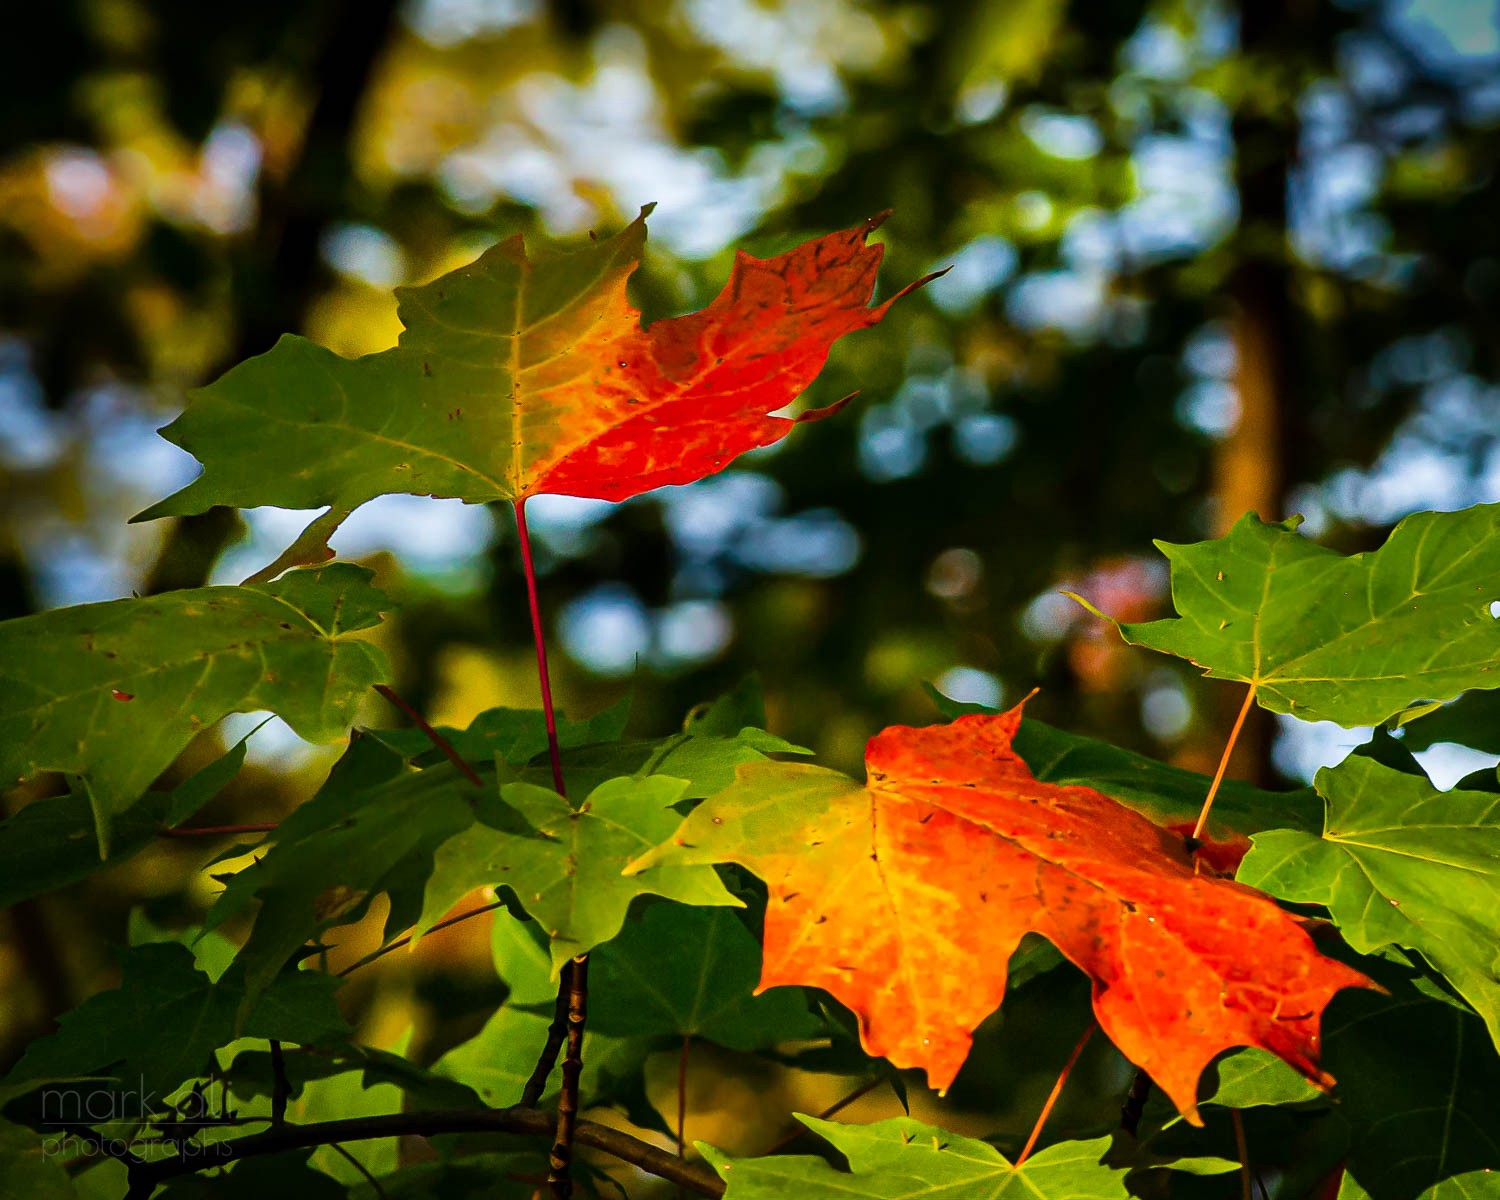 A splash of red color appears on leaves at the start of autumn.